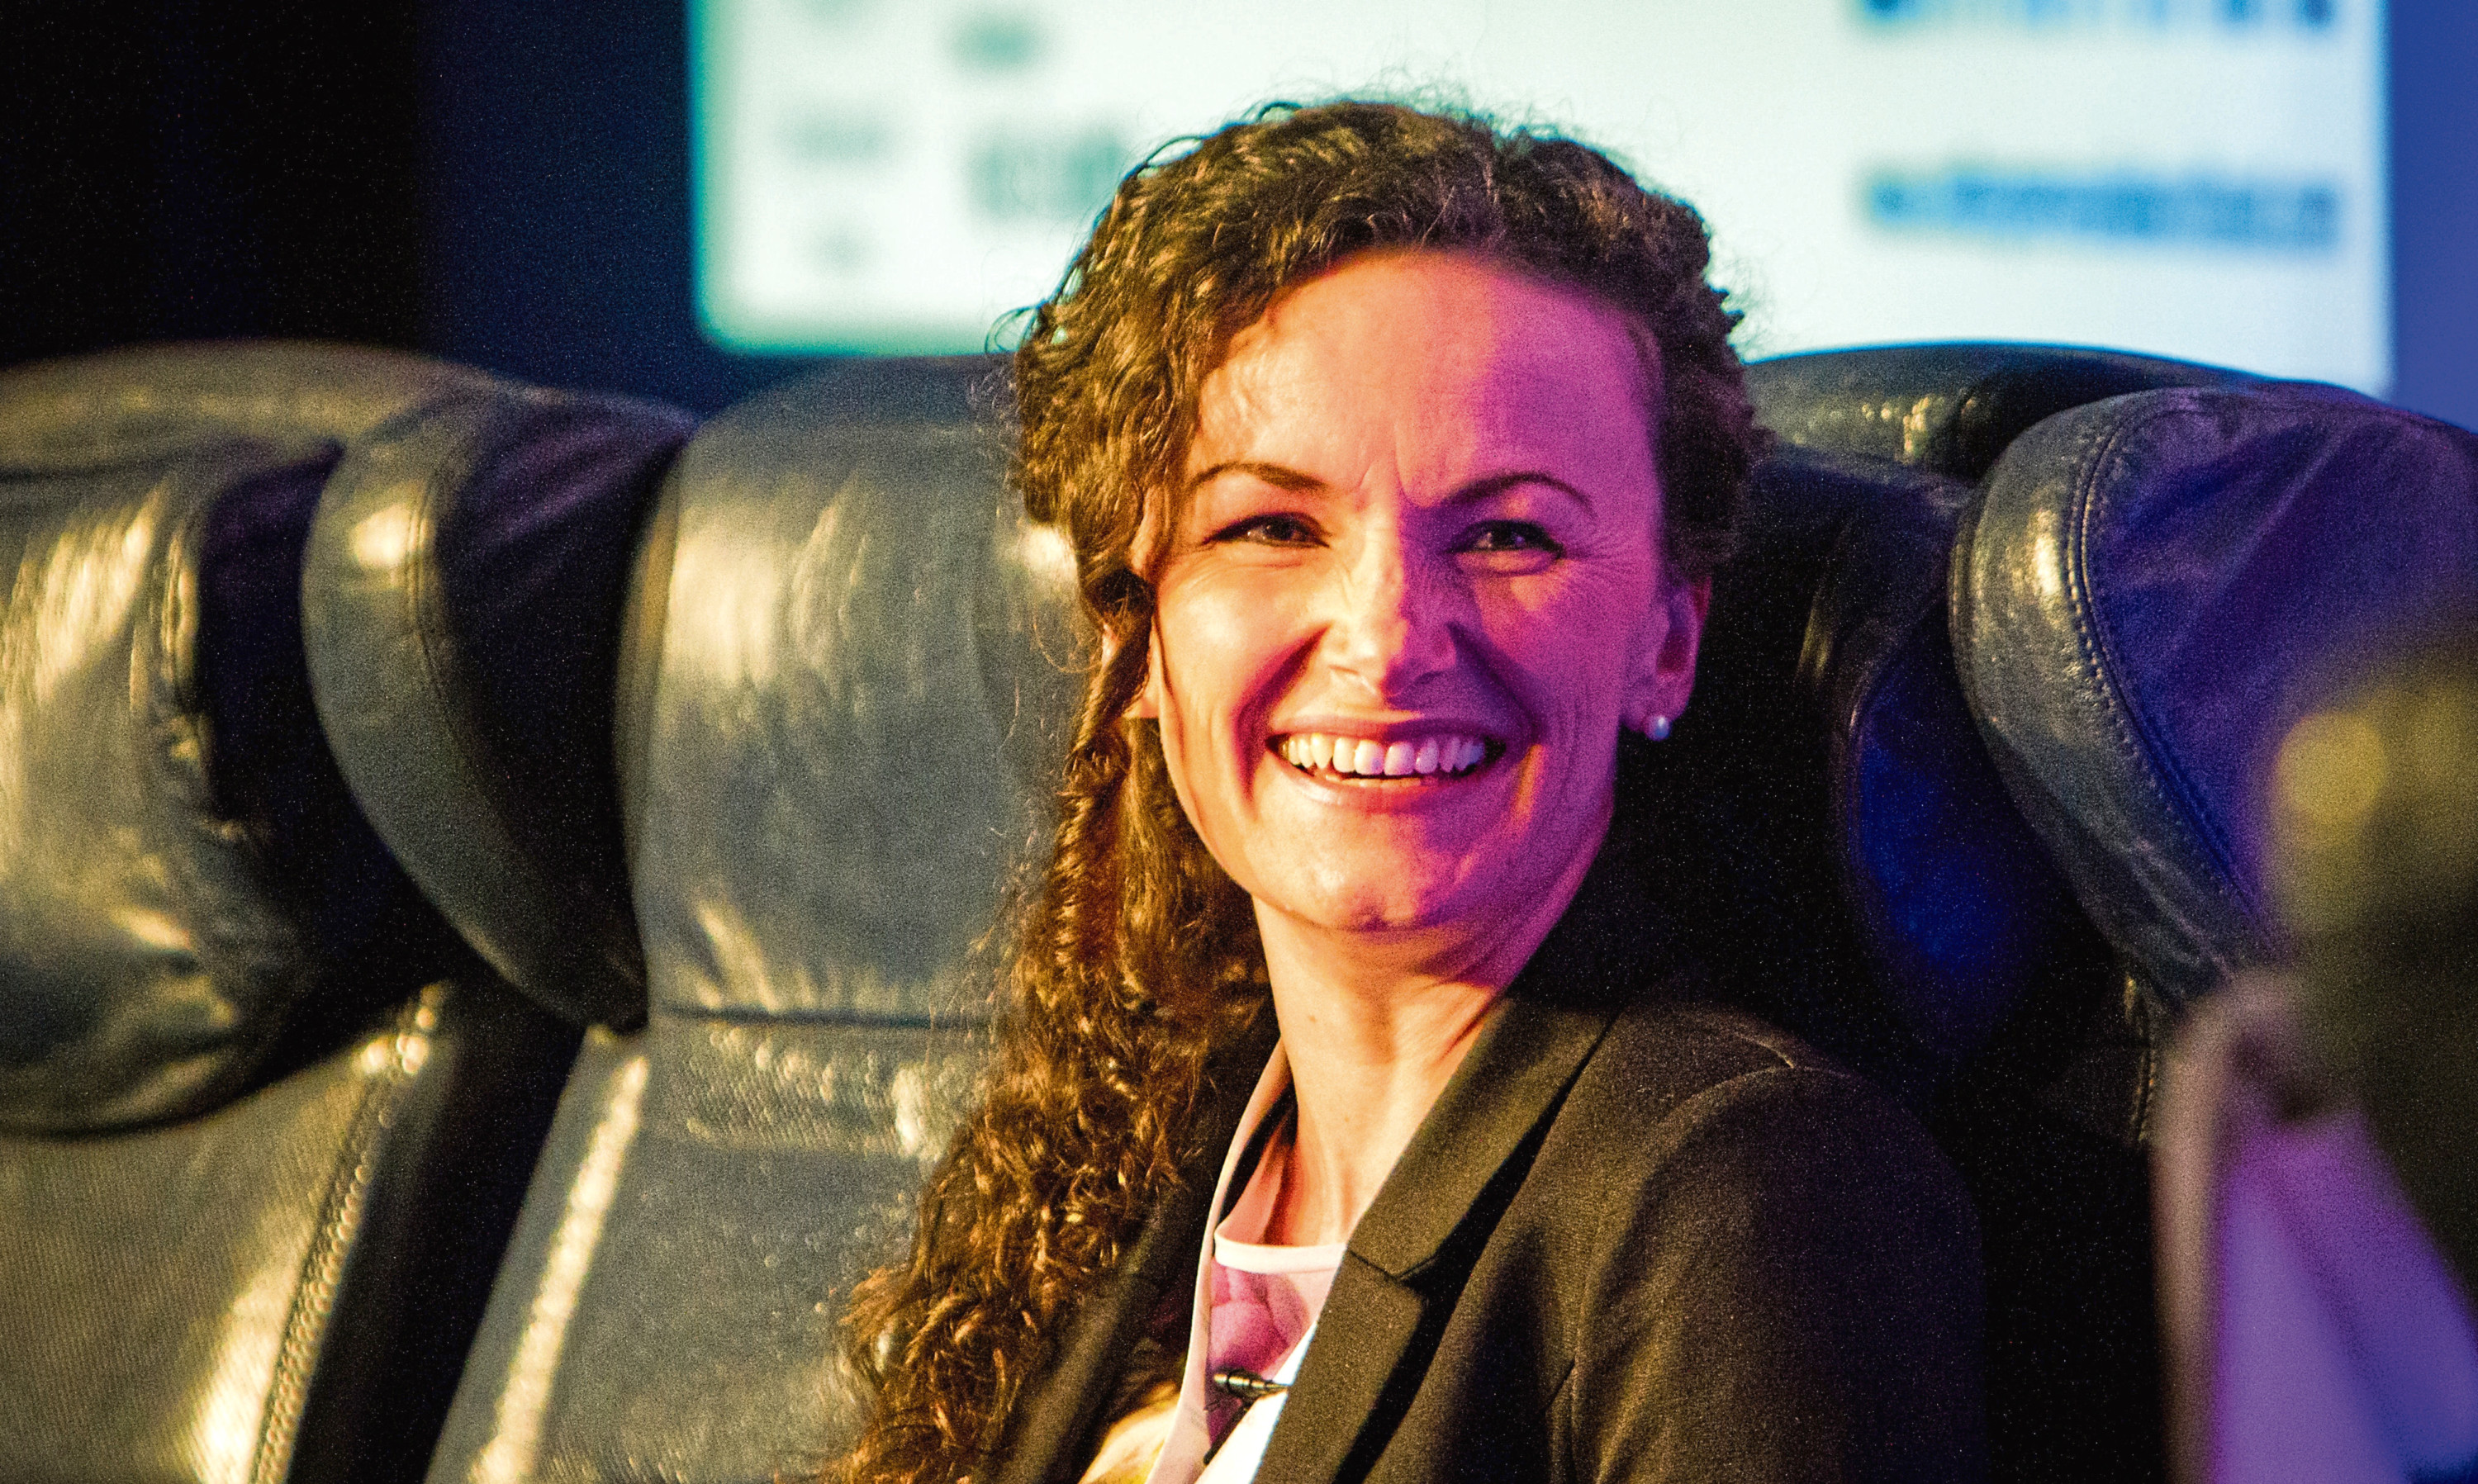 Lesley Eccles wants to affair proof relationships with her new tech venture. Picture: Steve MacDougall.